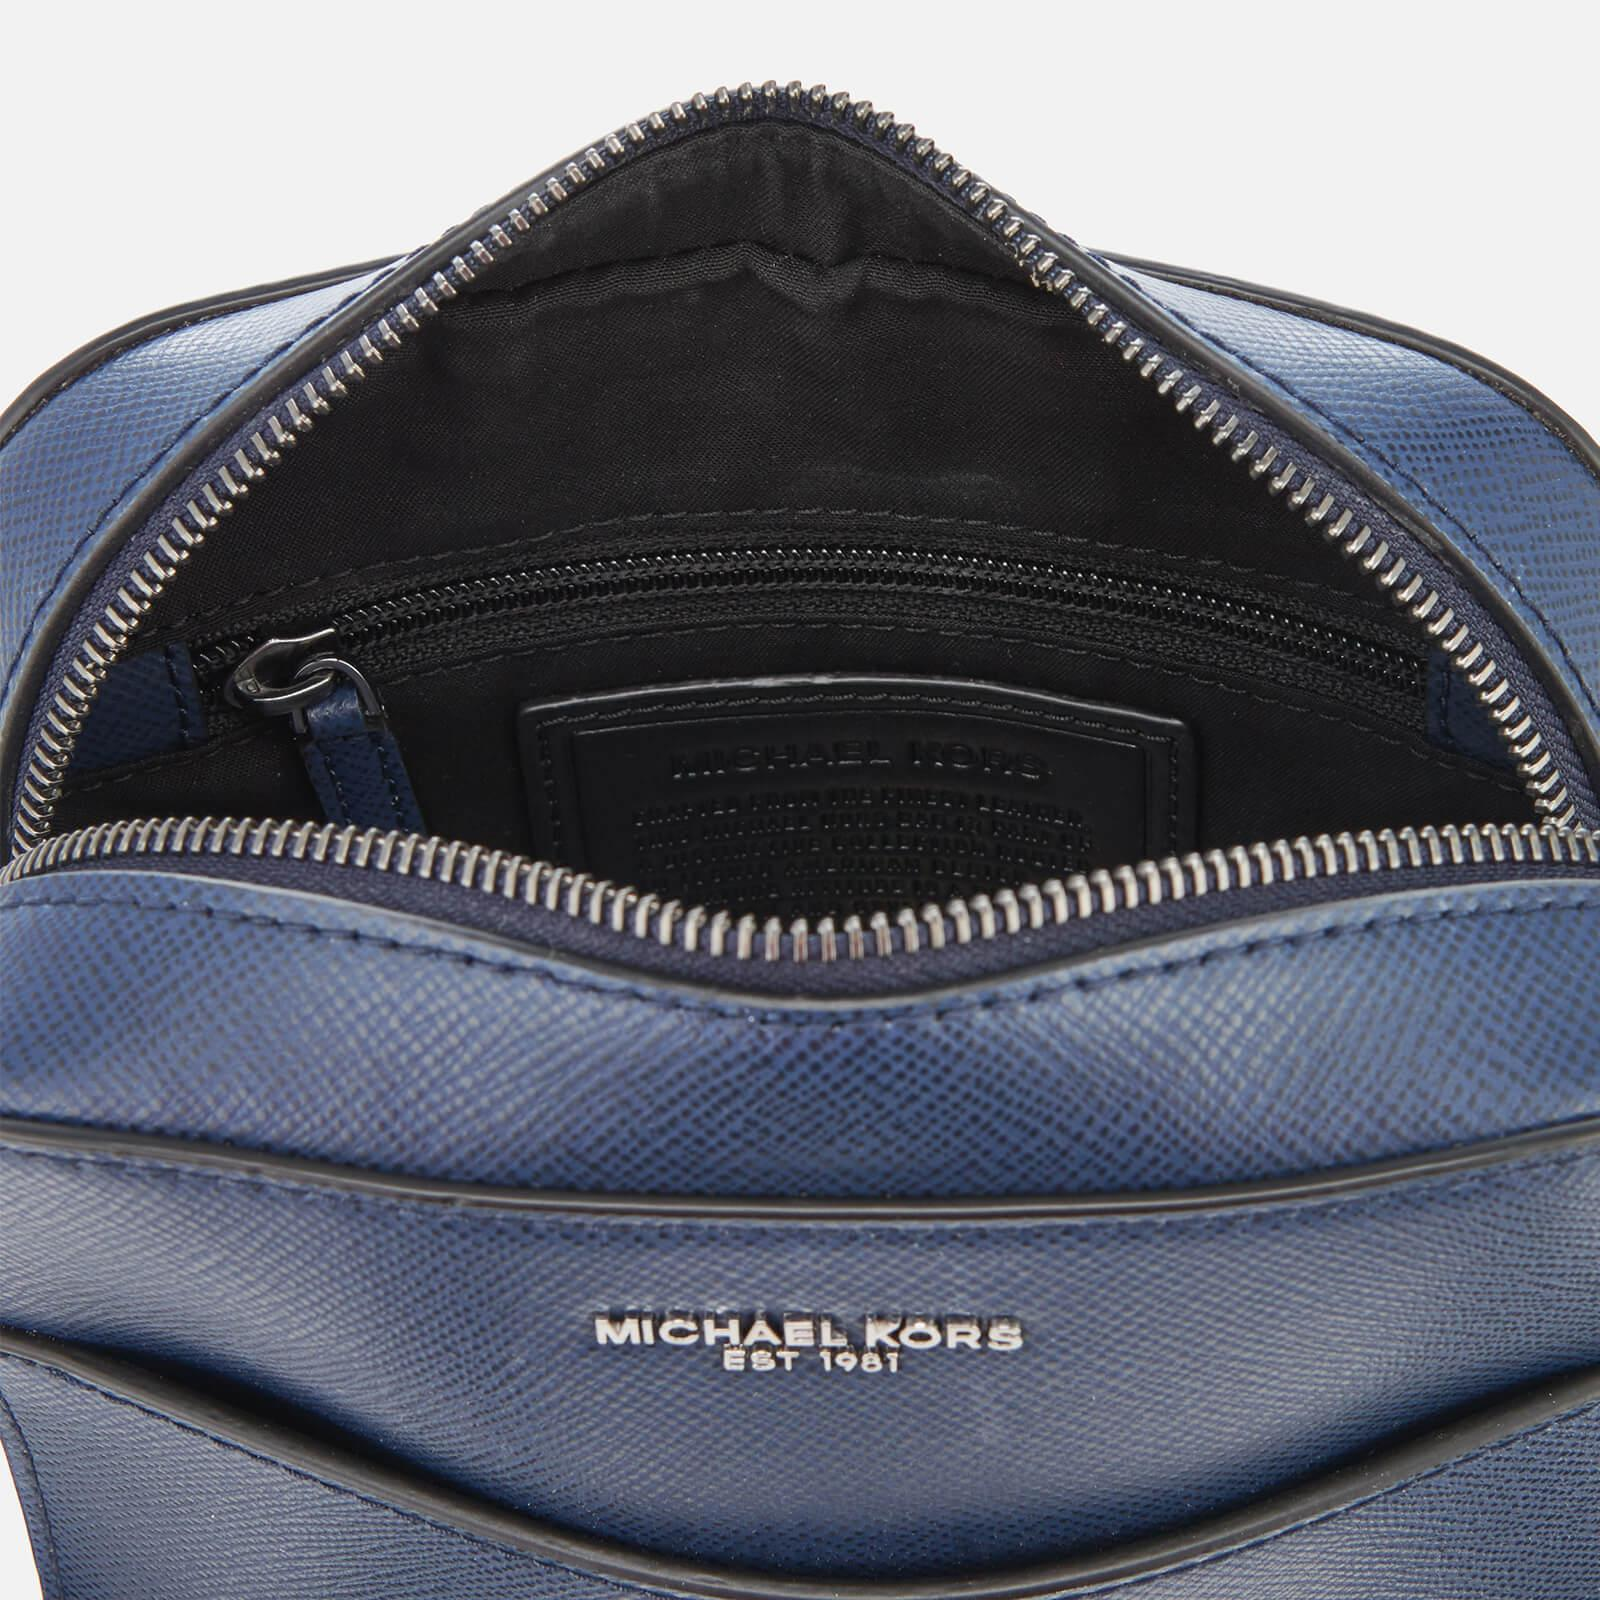 564452861b9be Michael Kors - Blue Harrison Flight Bag for Men - Lyst. View fullscreen